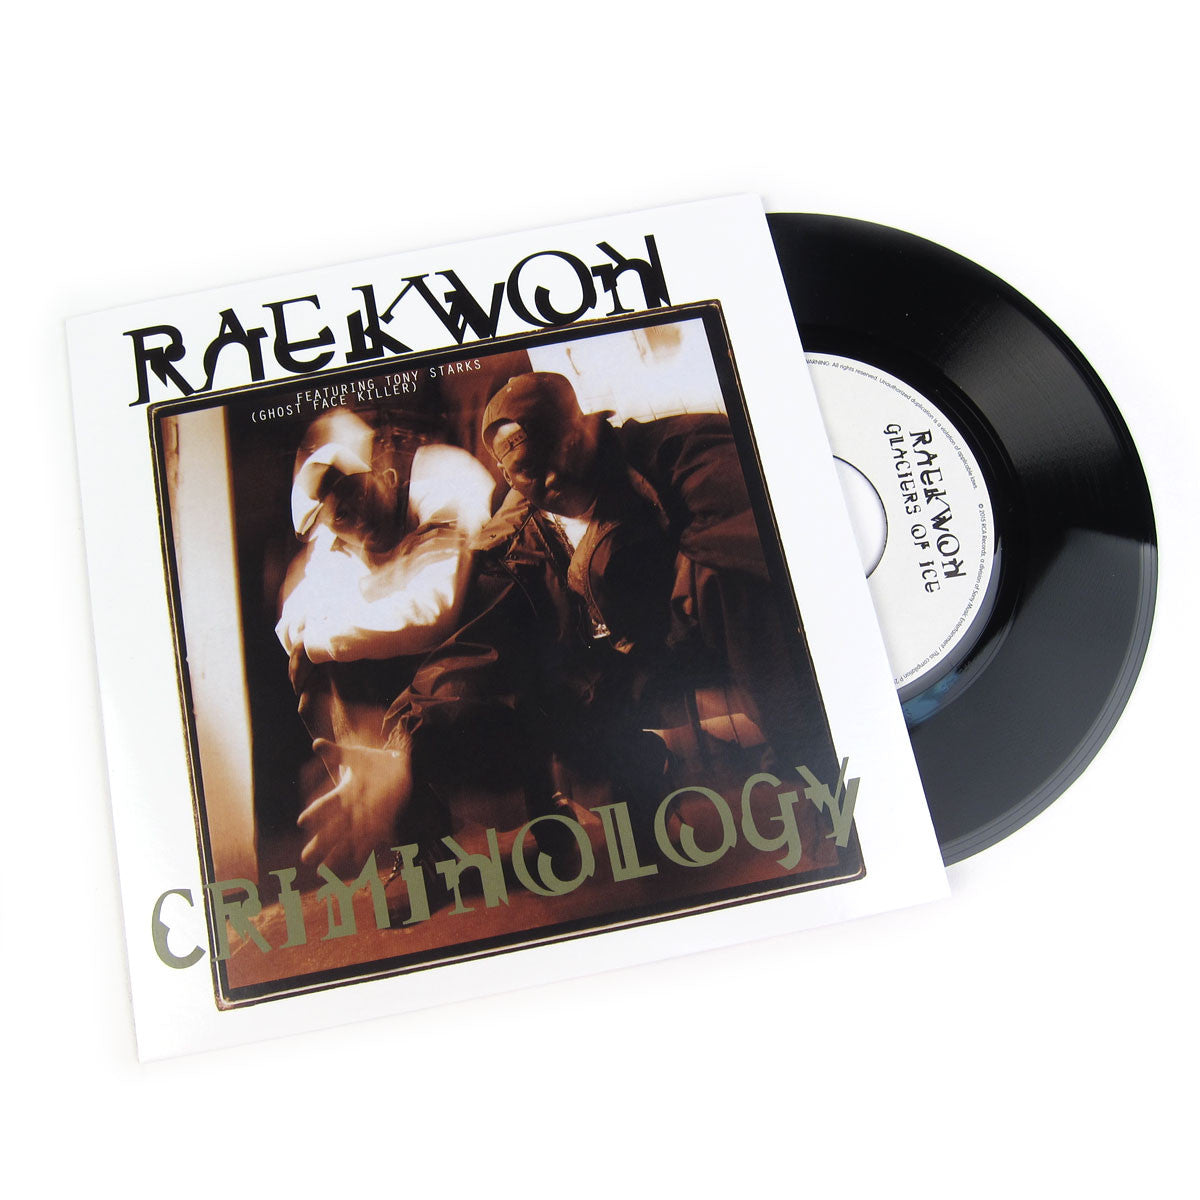 Raekwon: Criminology Vinyl 7""